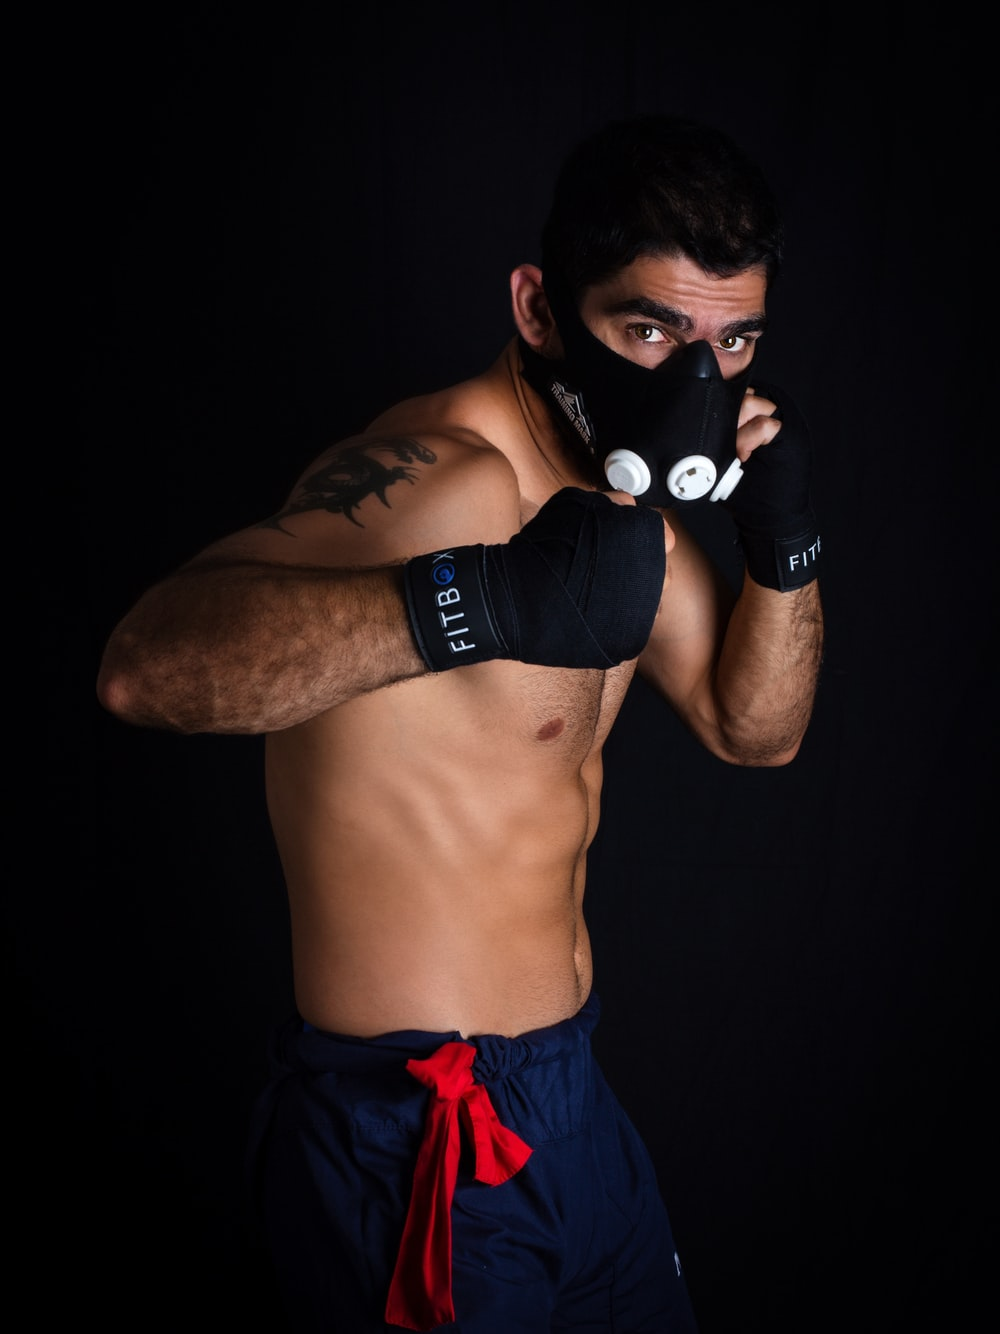 topless man wearing black boxing gloves